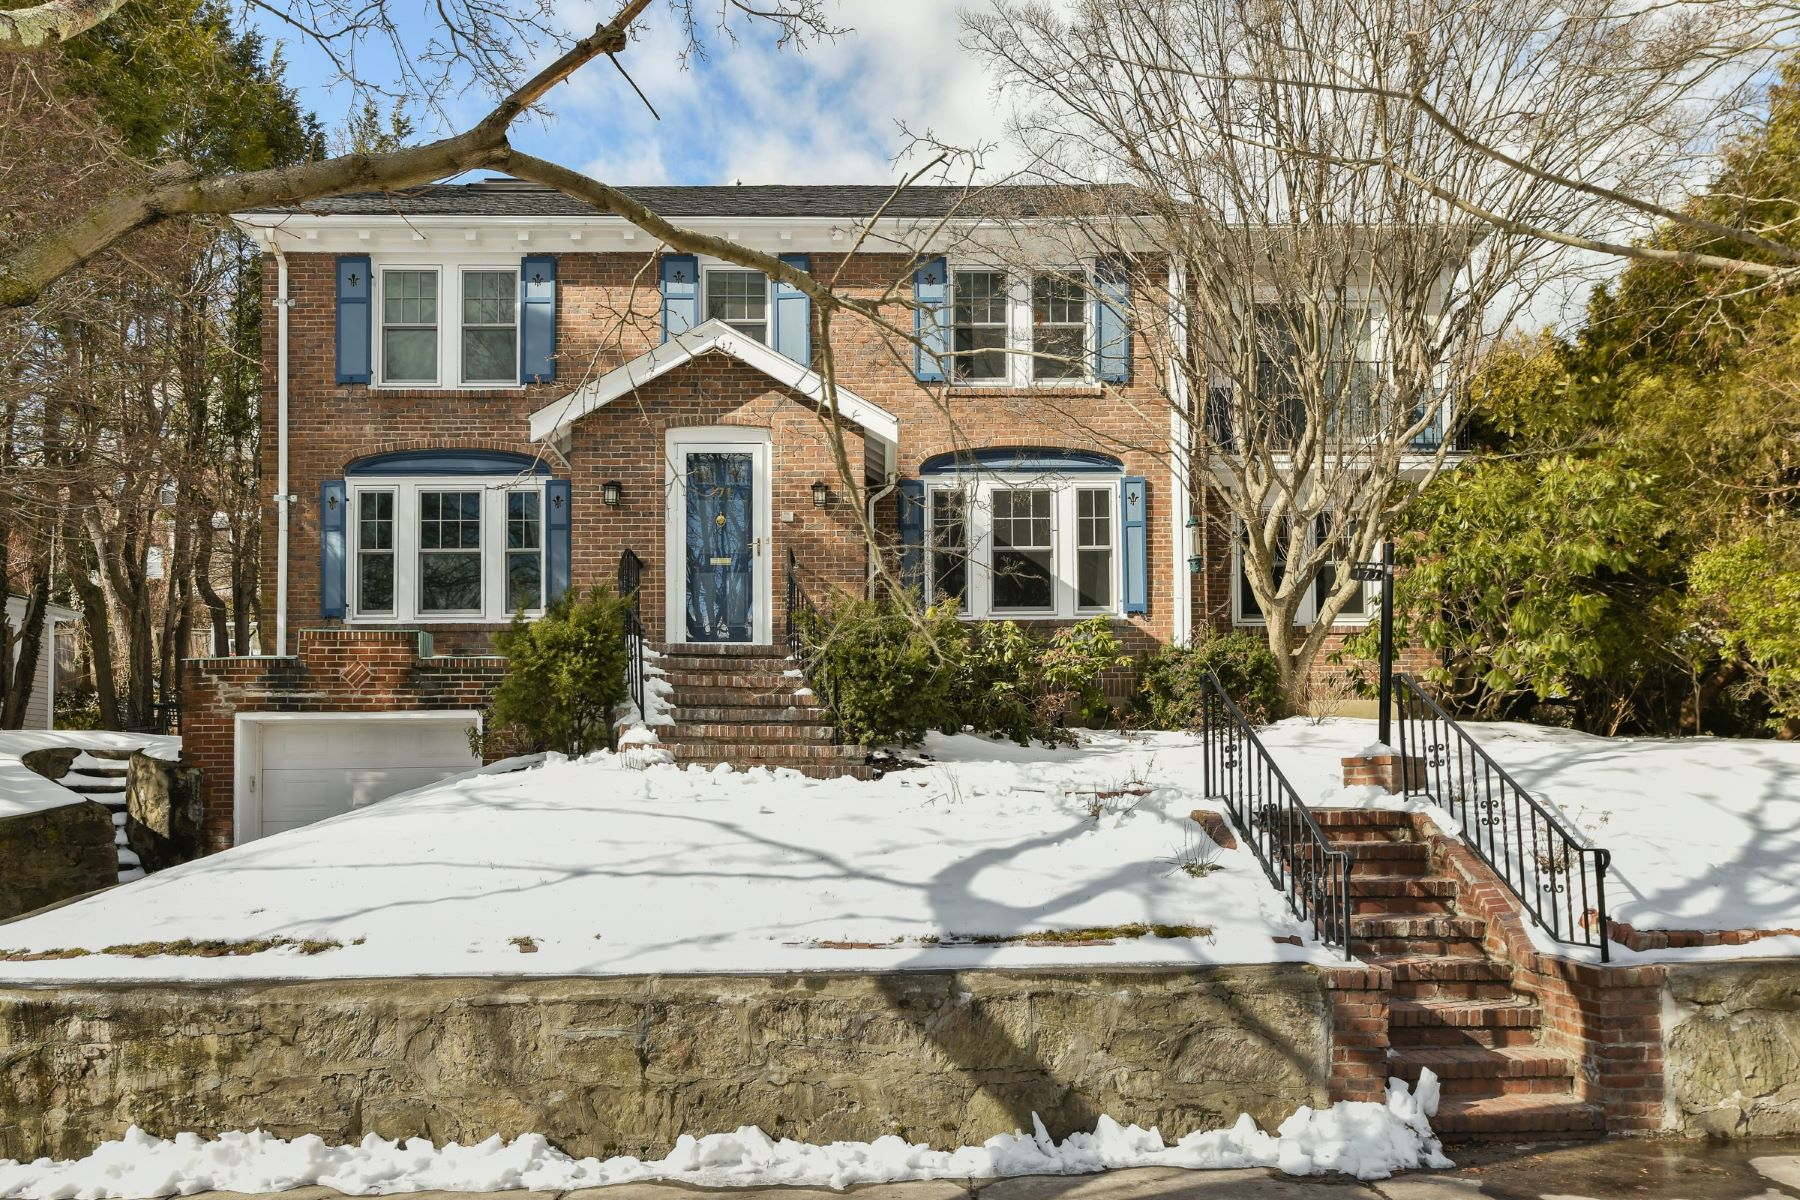 Single Family Home for Active at 171 Gardner Rd Brookline, Massachusetts 02445 United States